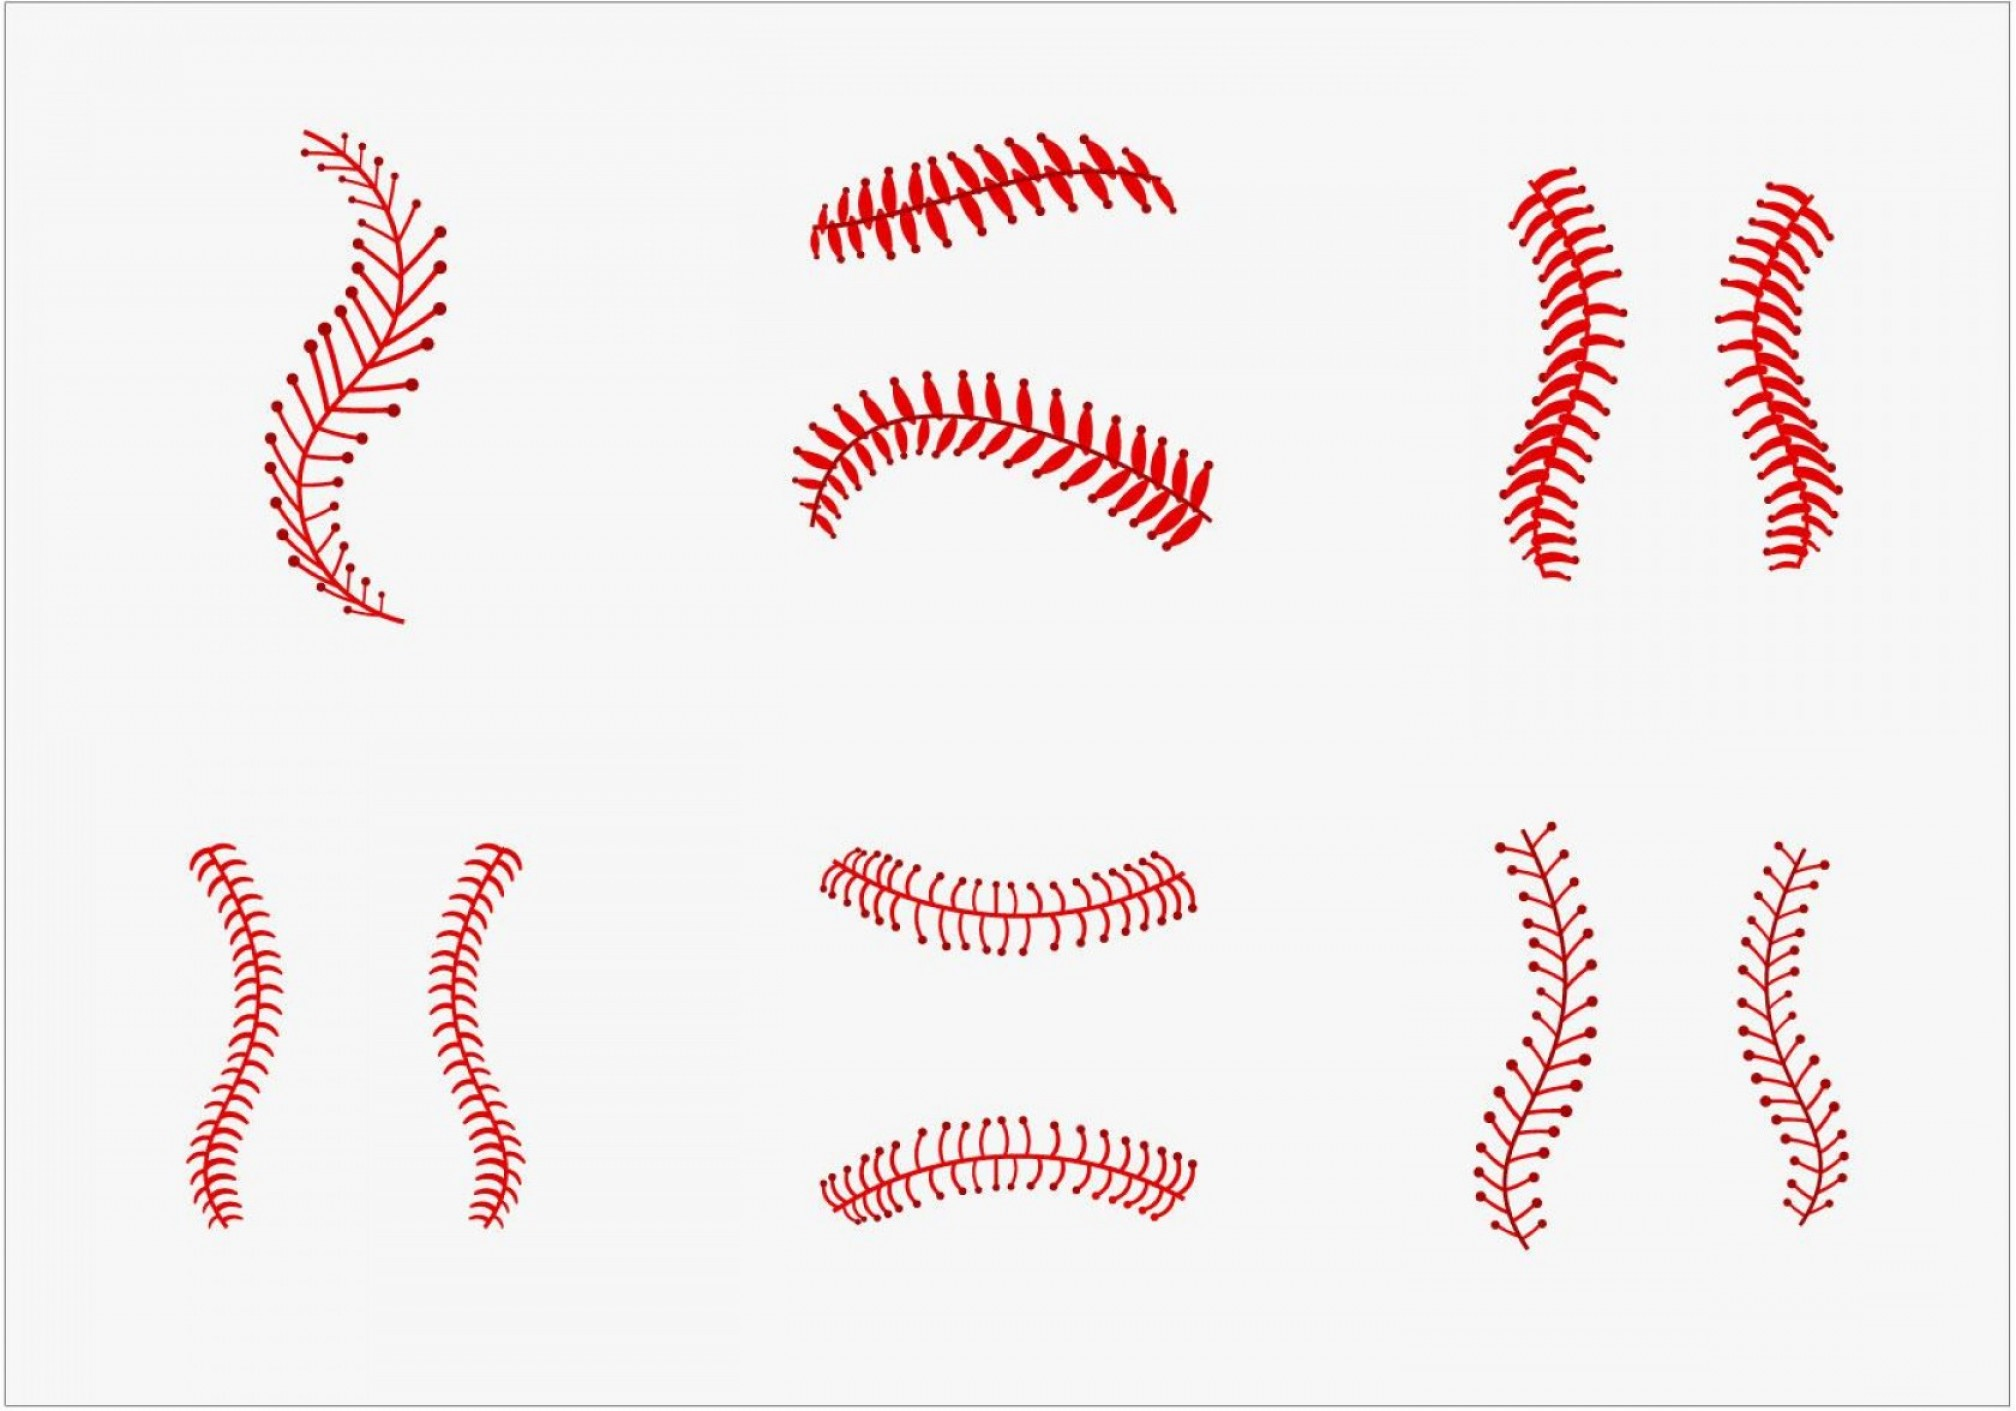 Softball seams clipart transparent download Softball Laces Vector Art B W | SOIDERGI transparent download